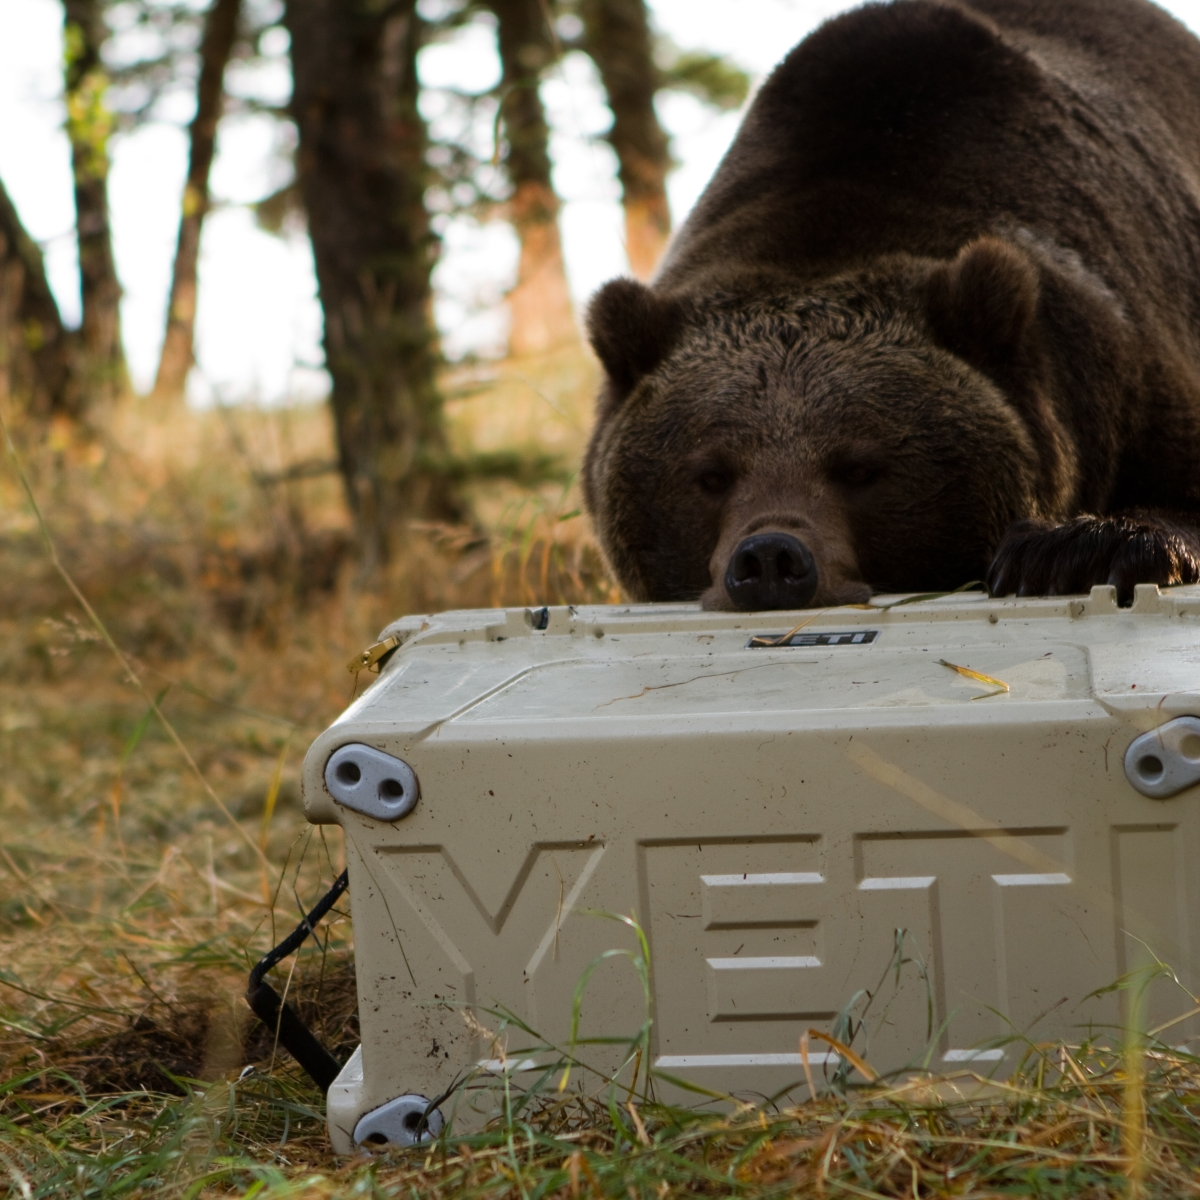 Yeti, the Cooler Company, Was Just Valued at $5 Billion